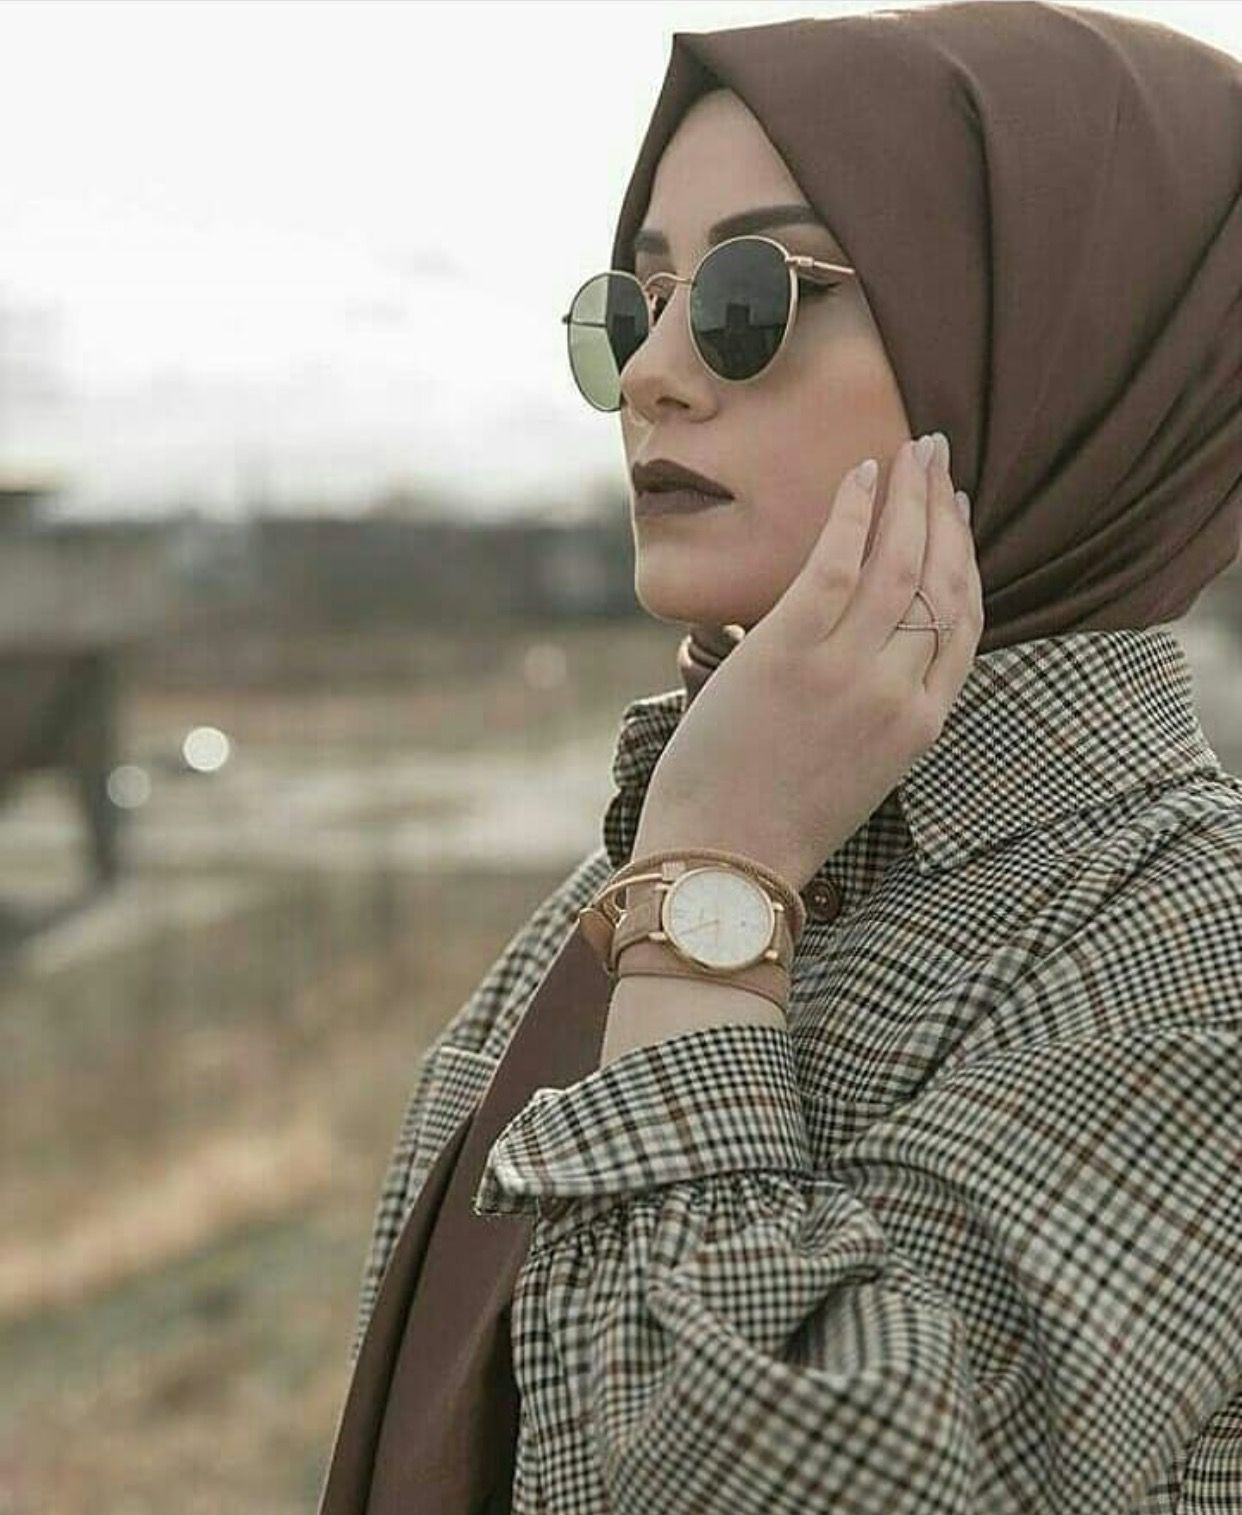 Pinterest just4girls Hijabi outfits casual, Girl with